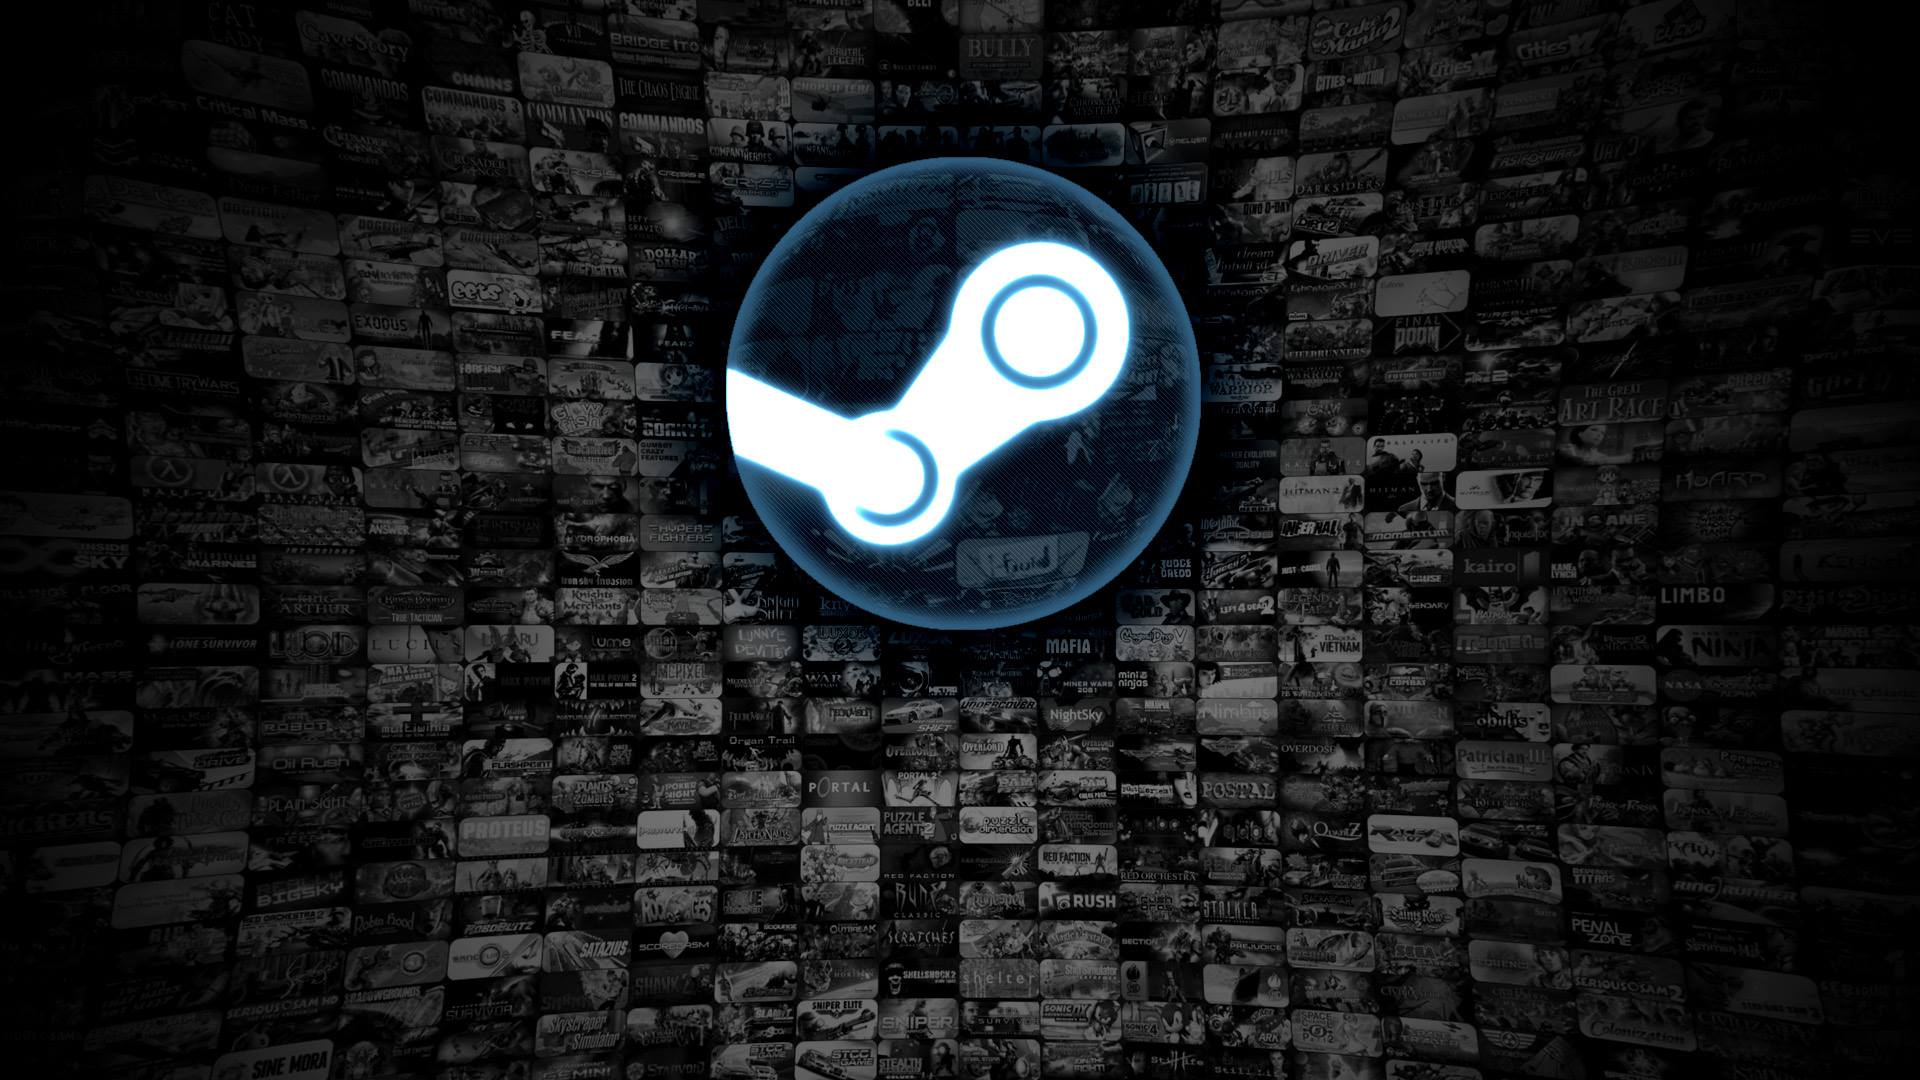 Steam suspends Bitcoin support due to high fees